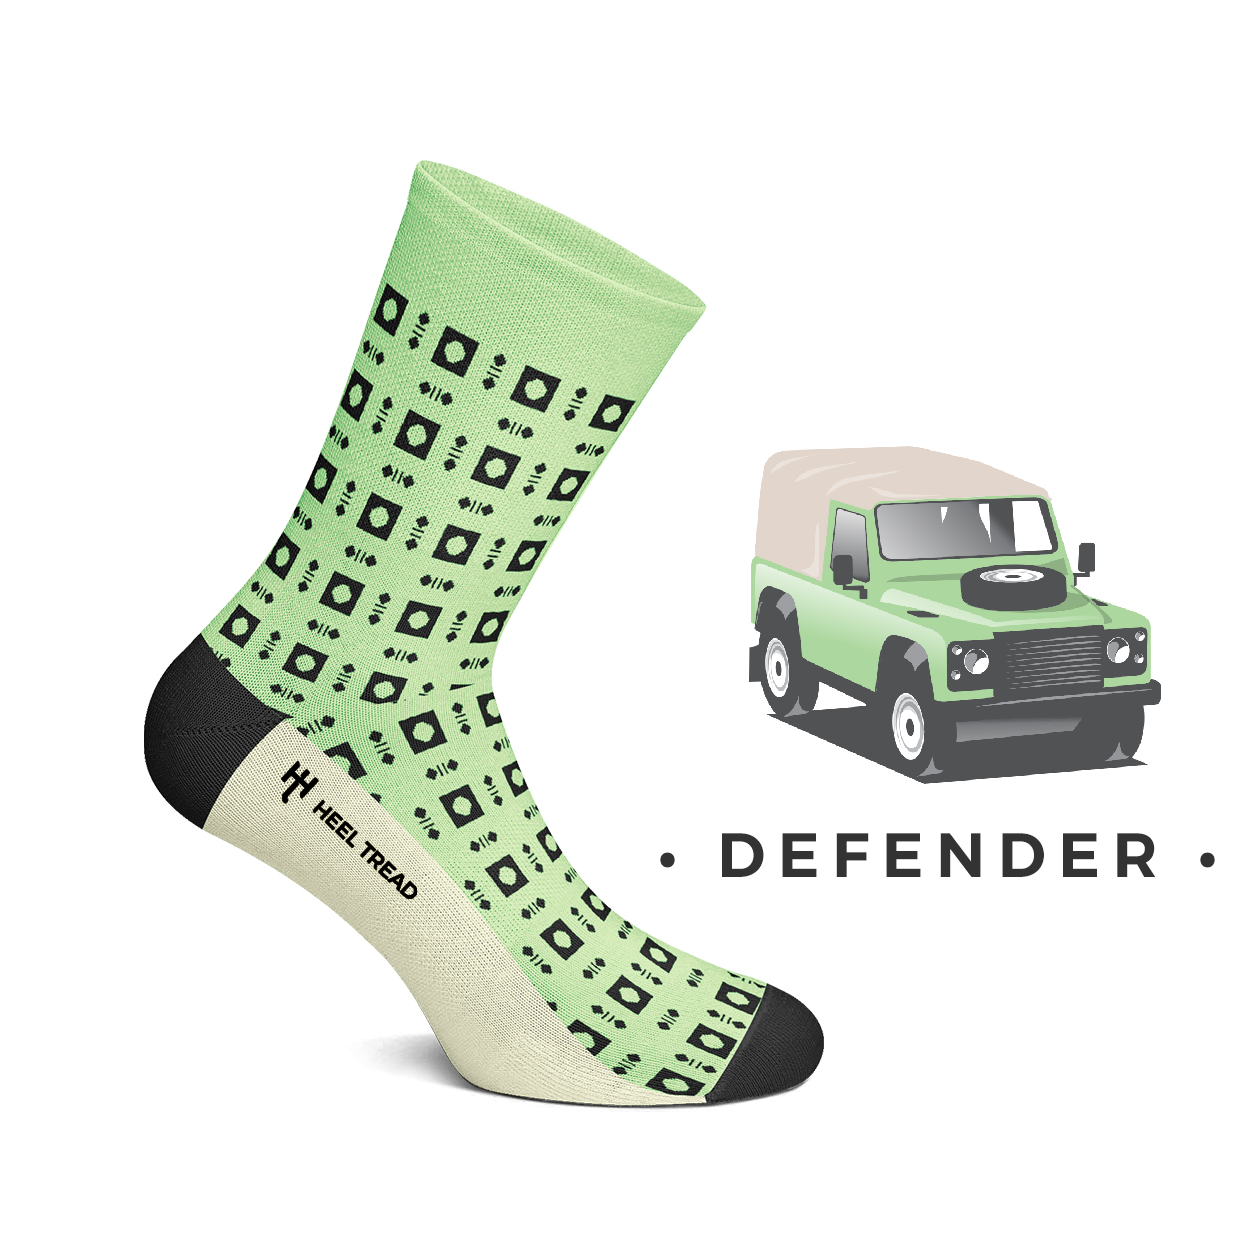 Heel Tread - Defender Socks